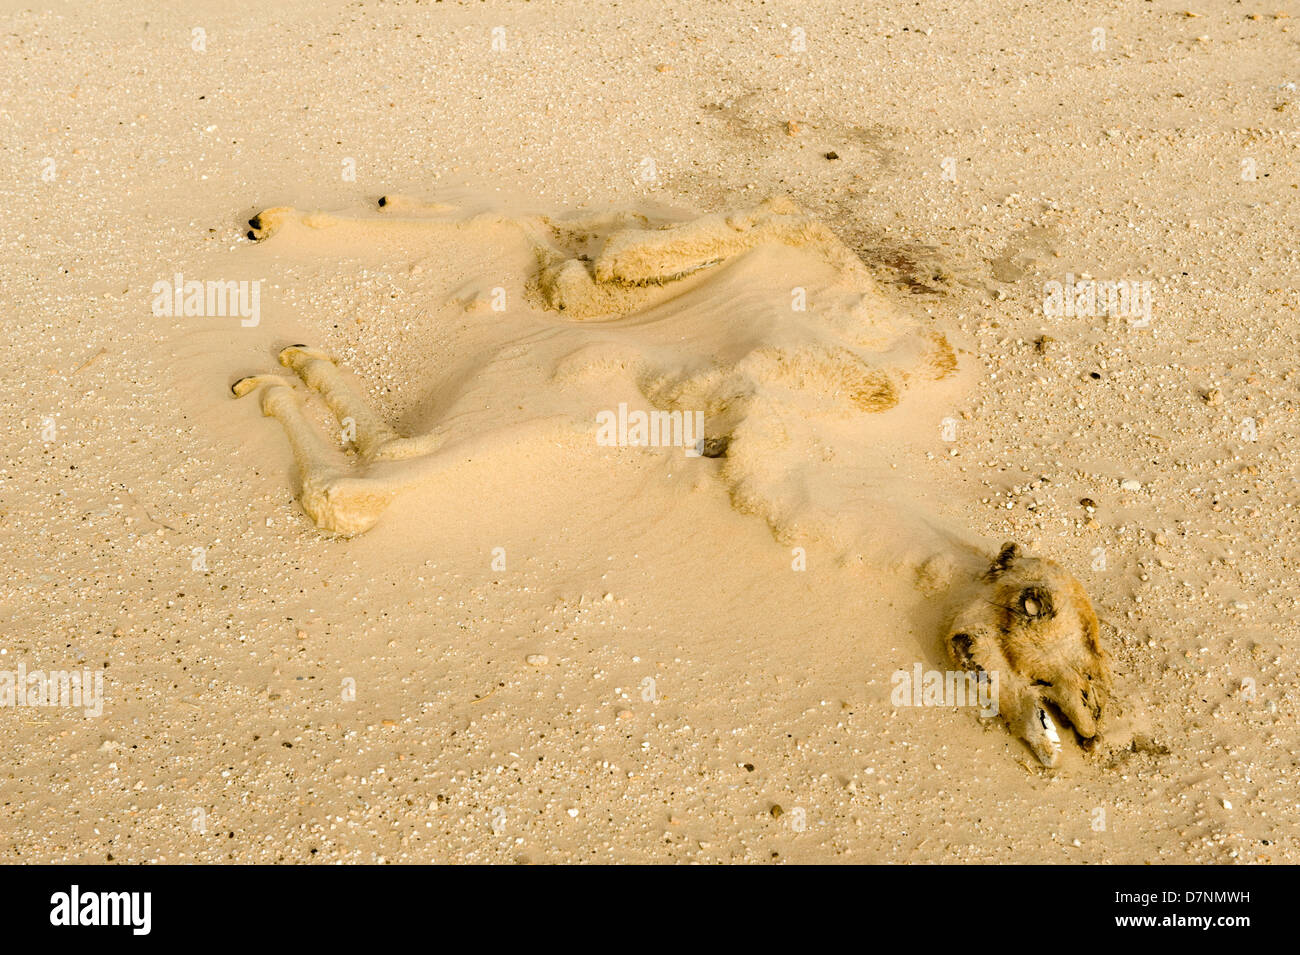 A dry long dead camel calf carcass half buried by sand in the desert, Abu Dhabi - Stock Image